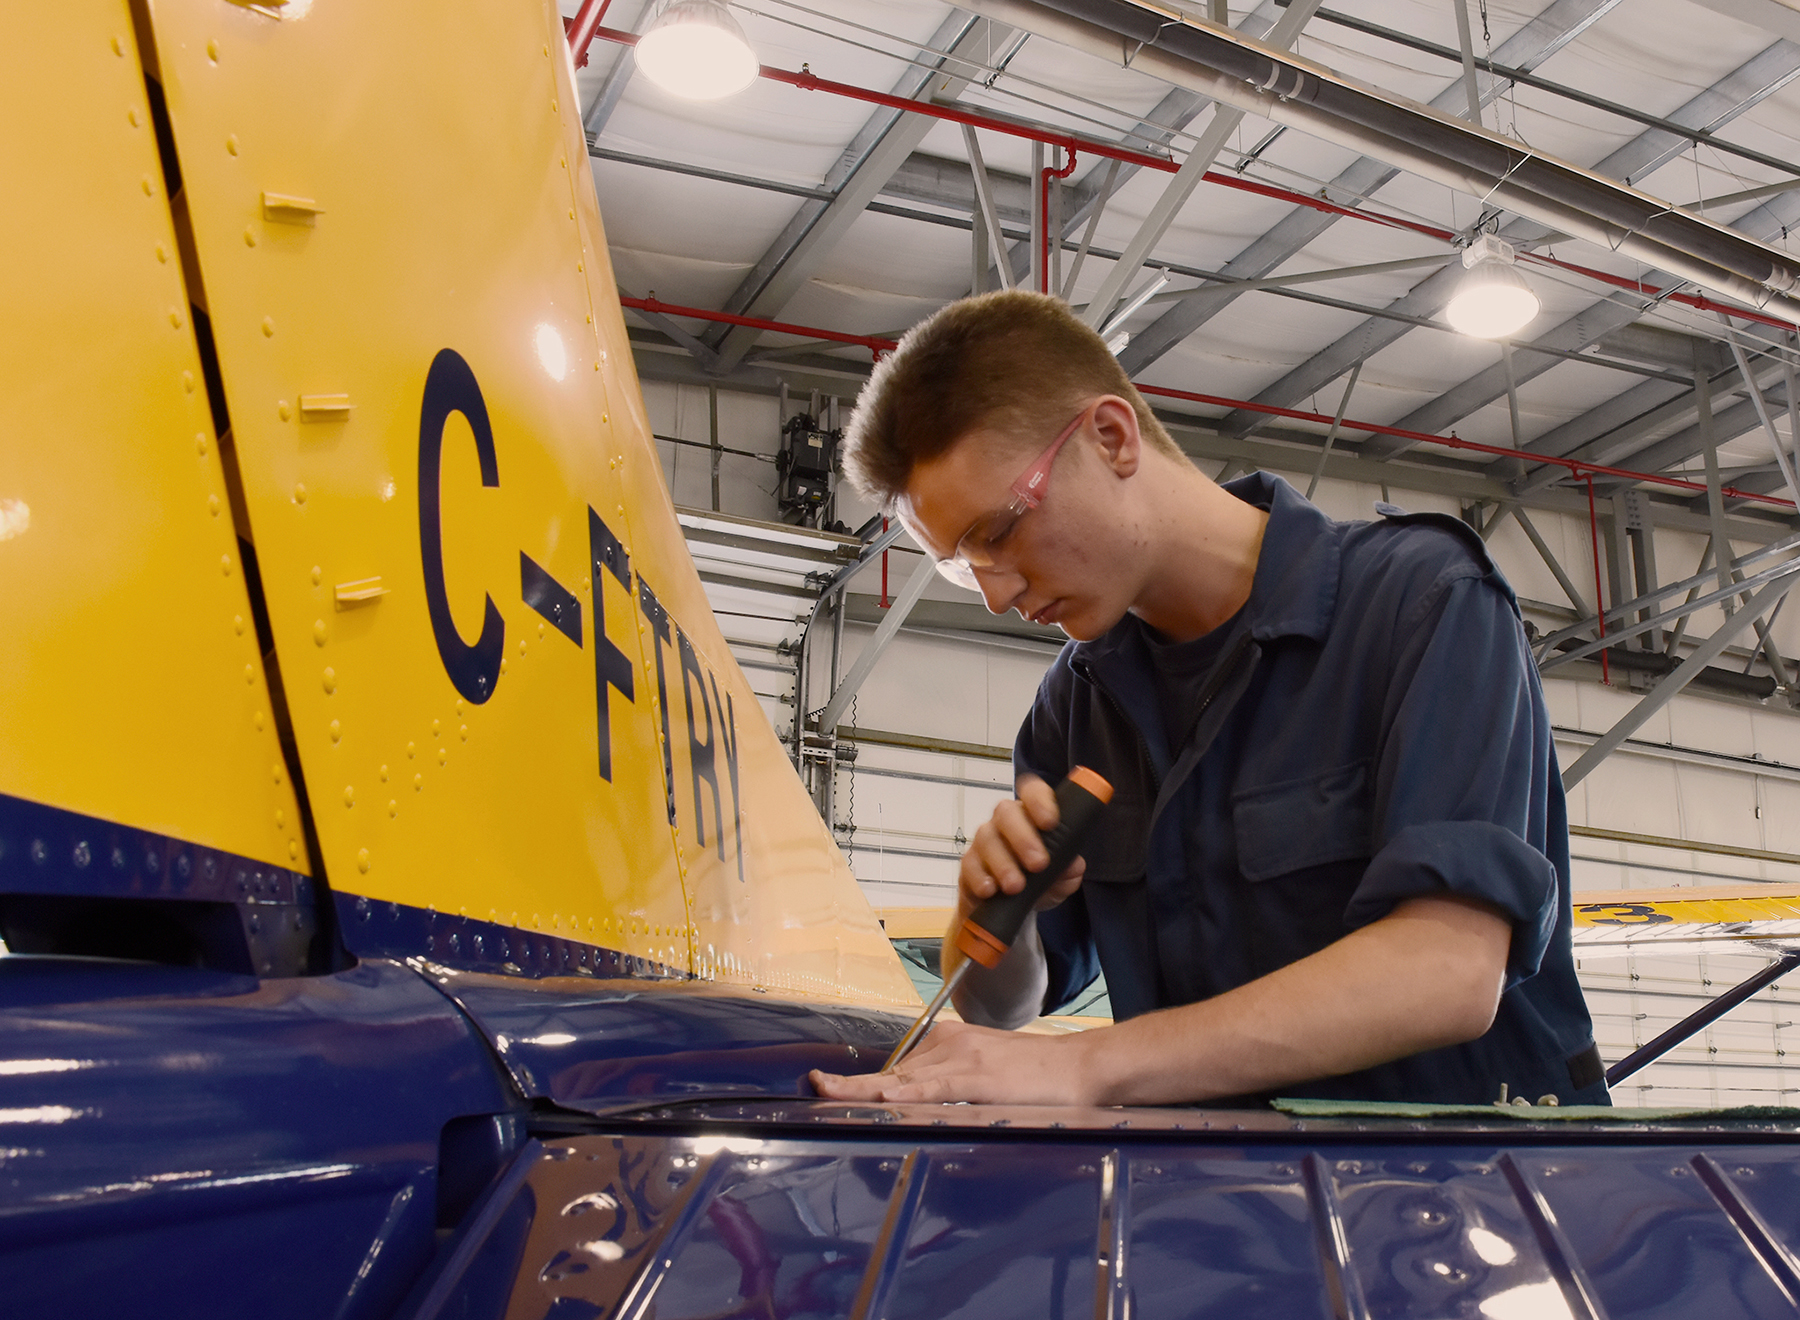 A young man wearing dark blue coveralls works on the tail of an aircraft in a large building.